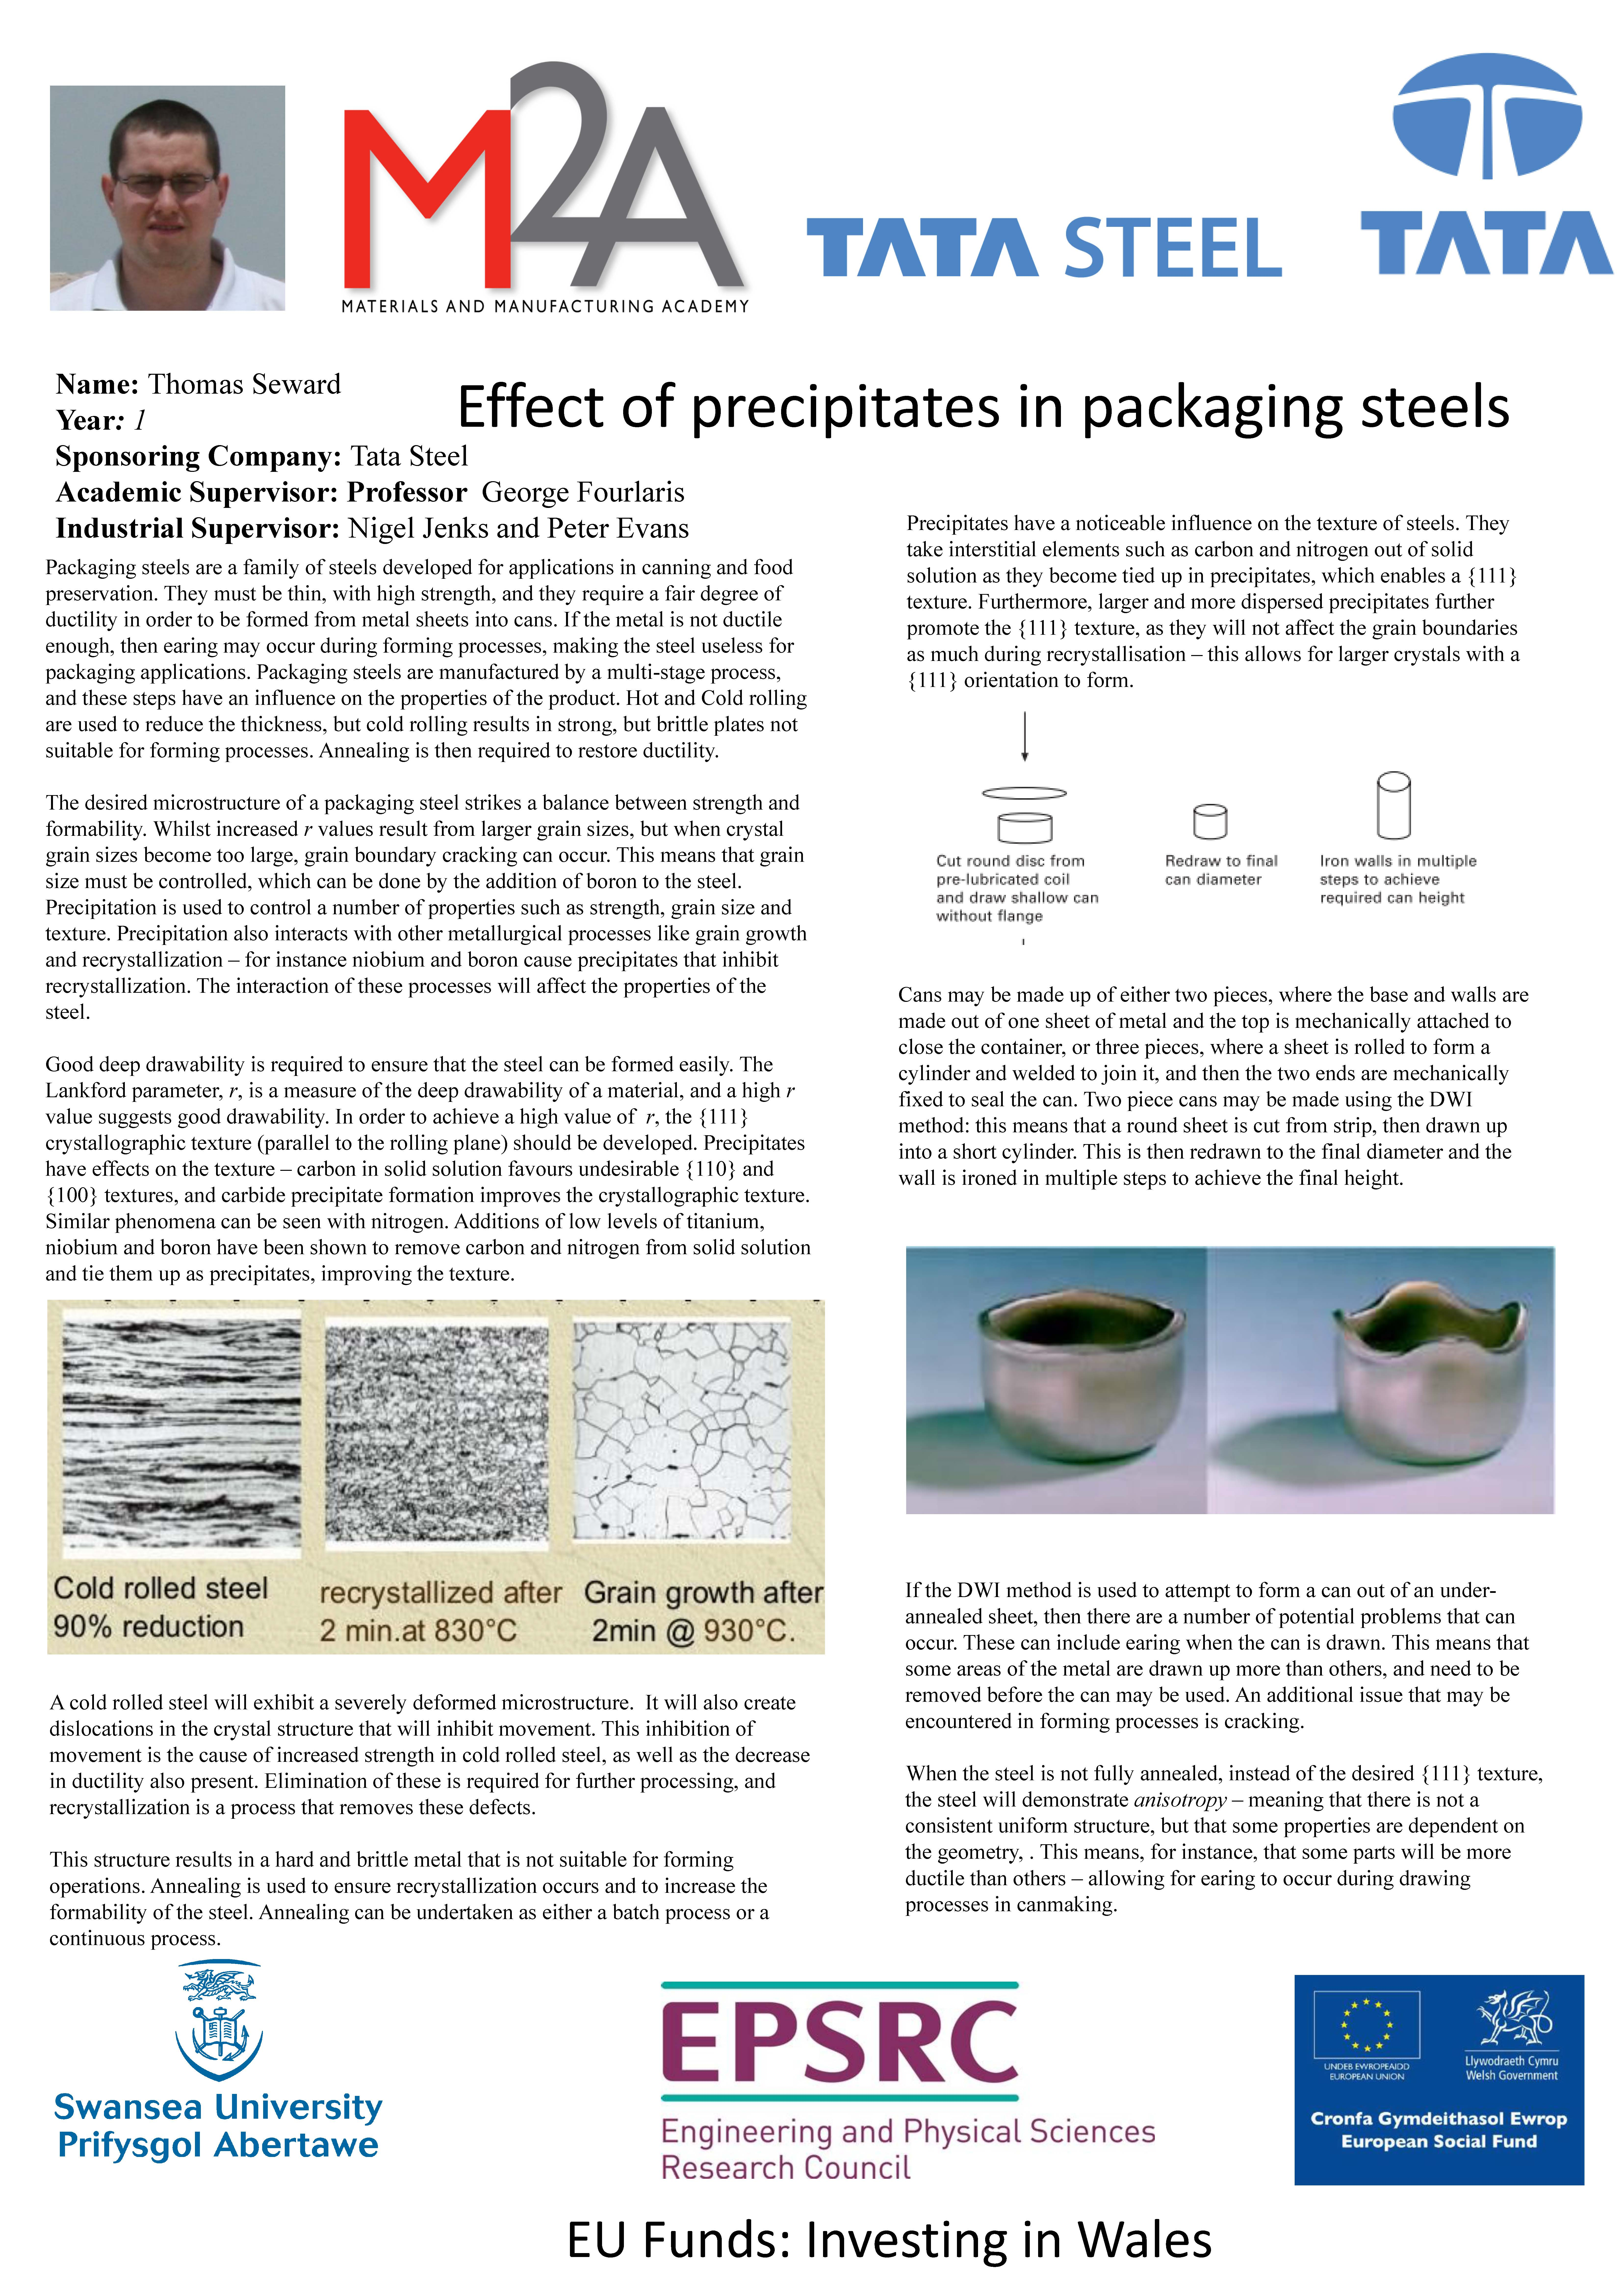 Effect of precipitates in packaging steels